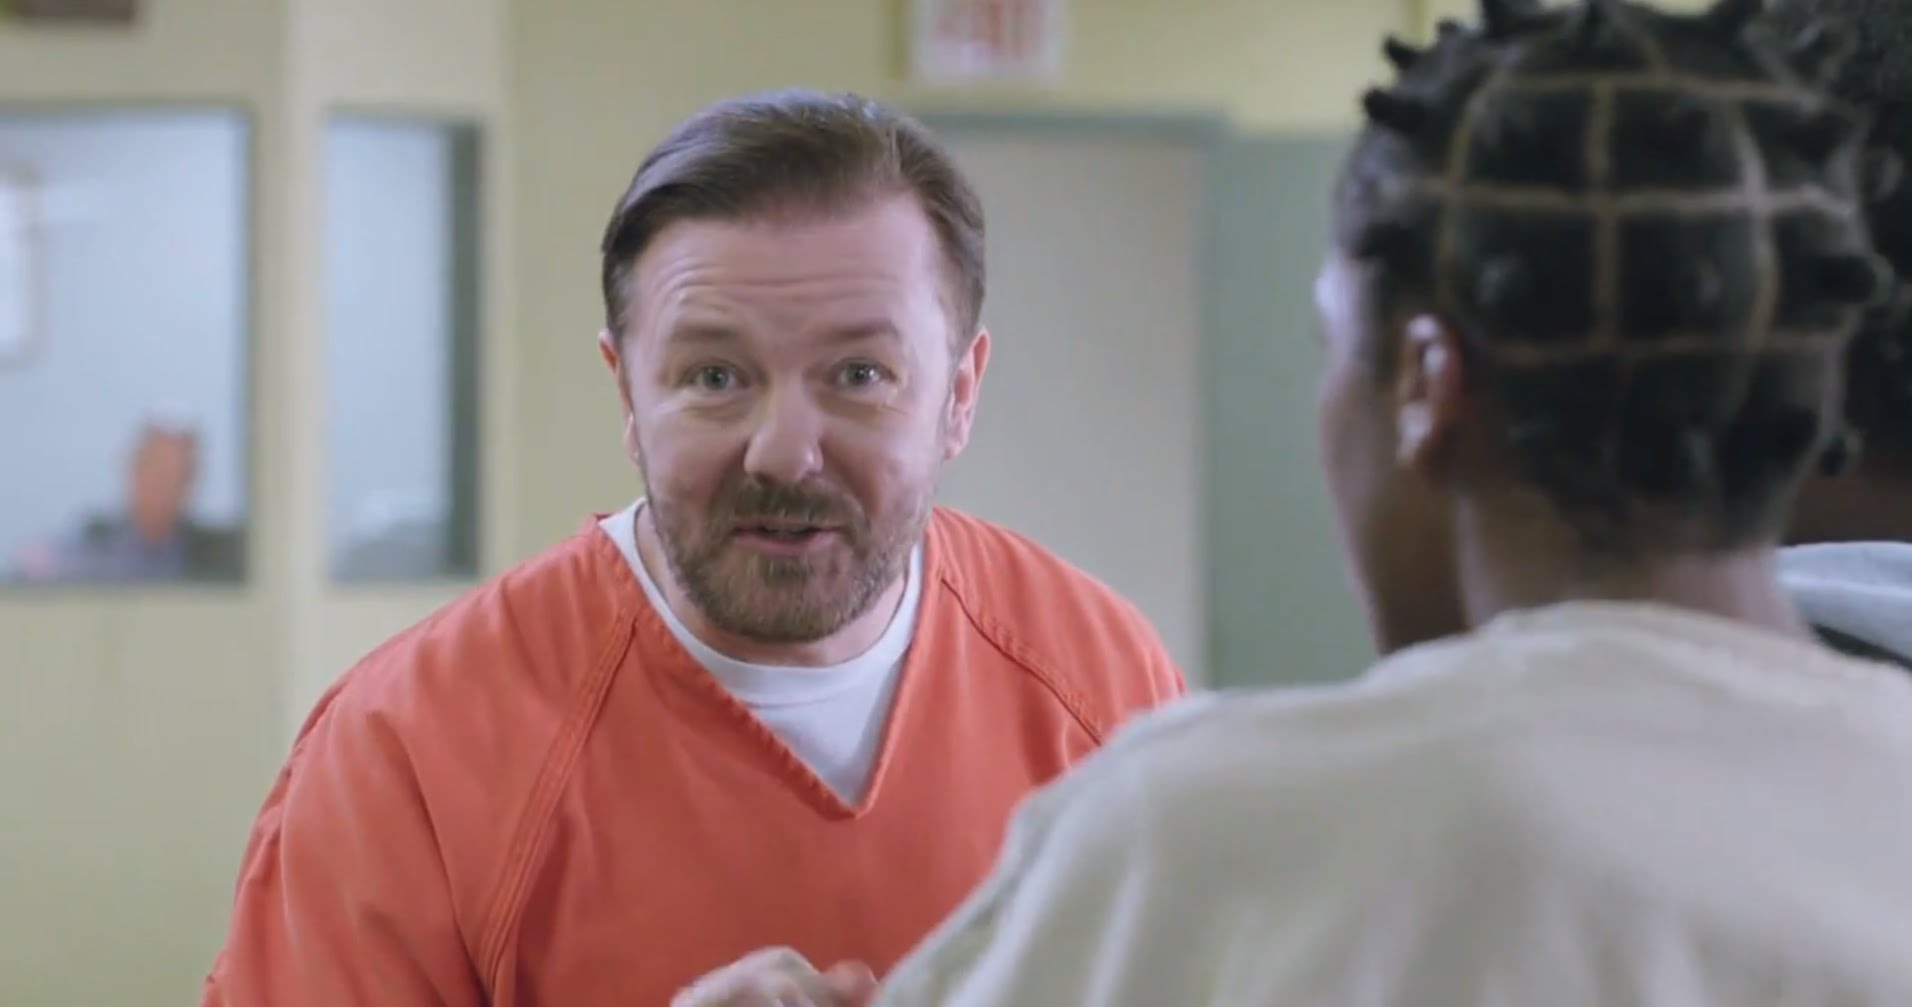 Ricky Gervais' Ad for Netflix is pretty clever